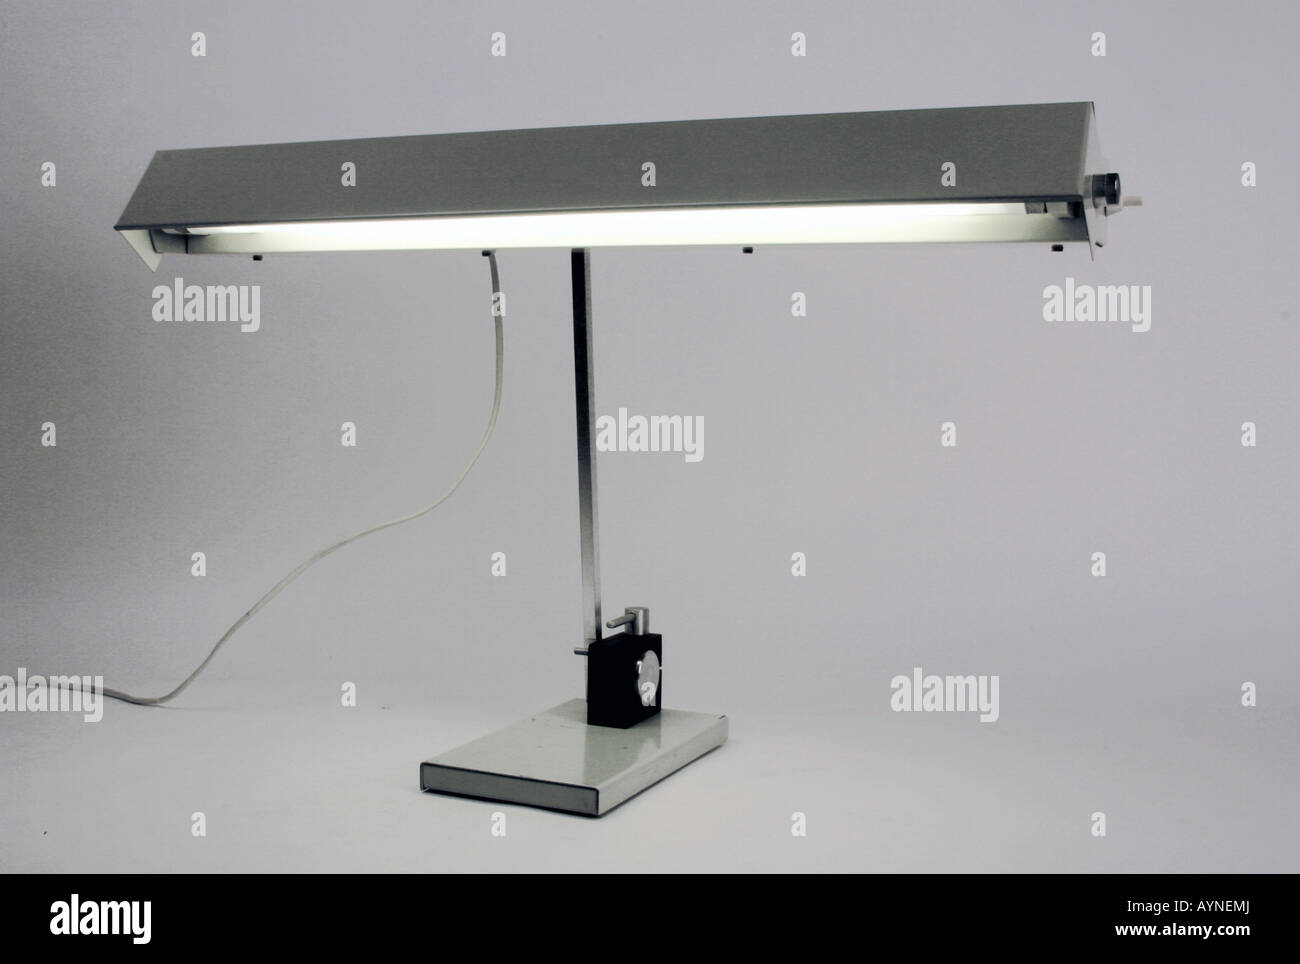 Furniture lamps and light adjustable fluorescent desk lamp tl furniture lamps and light adjustable fluorescent desk lamp tl 2020 produced by veb metealldruecker halle gdr 1970s histori geotapseo Gallery